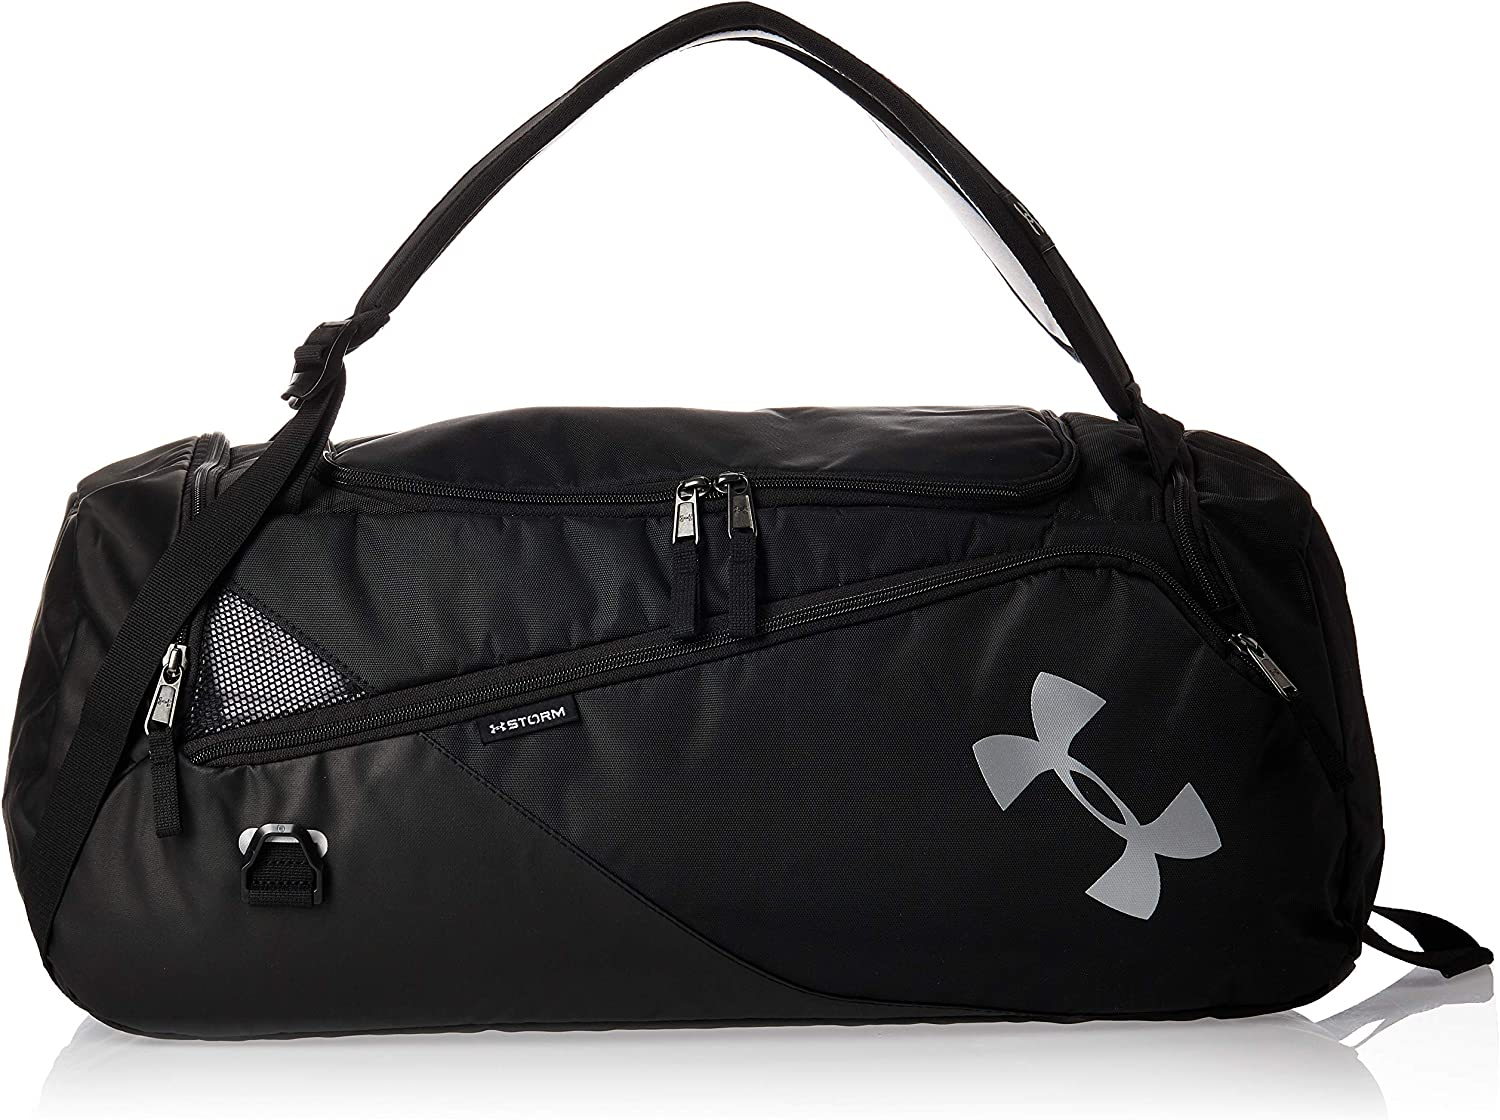 Under Armour Adult Contain Duo 2 Duffle Bag Black 001 Silver One Size Fits All Clothing